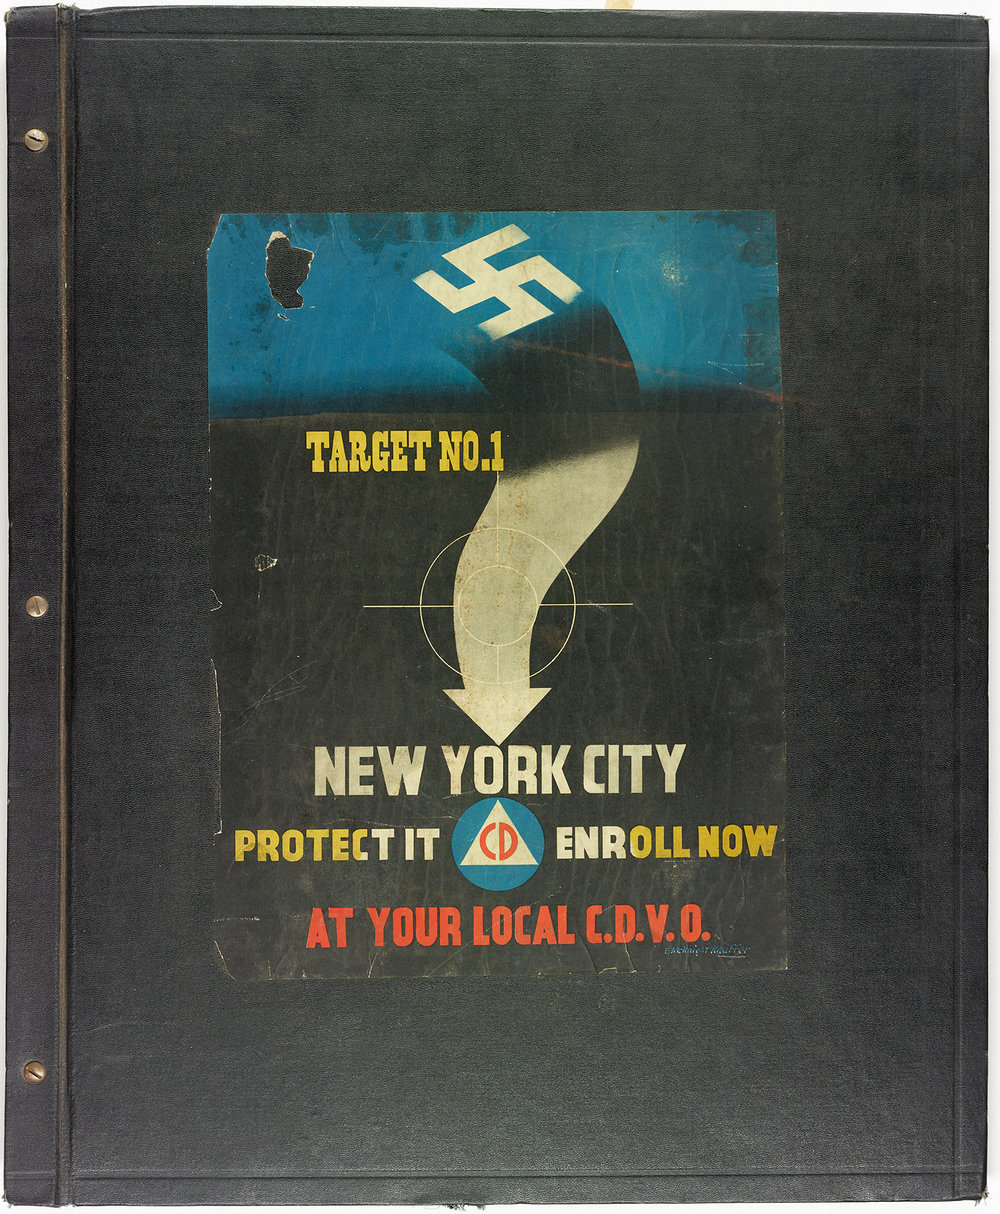 Cover of the Office of Civil Defense Scrapbook from Mayor La Guardia's papers. This poster and slogan were used throughout the war and emphasized the fear felt by many New Yorkers.